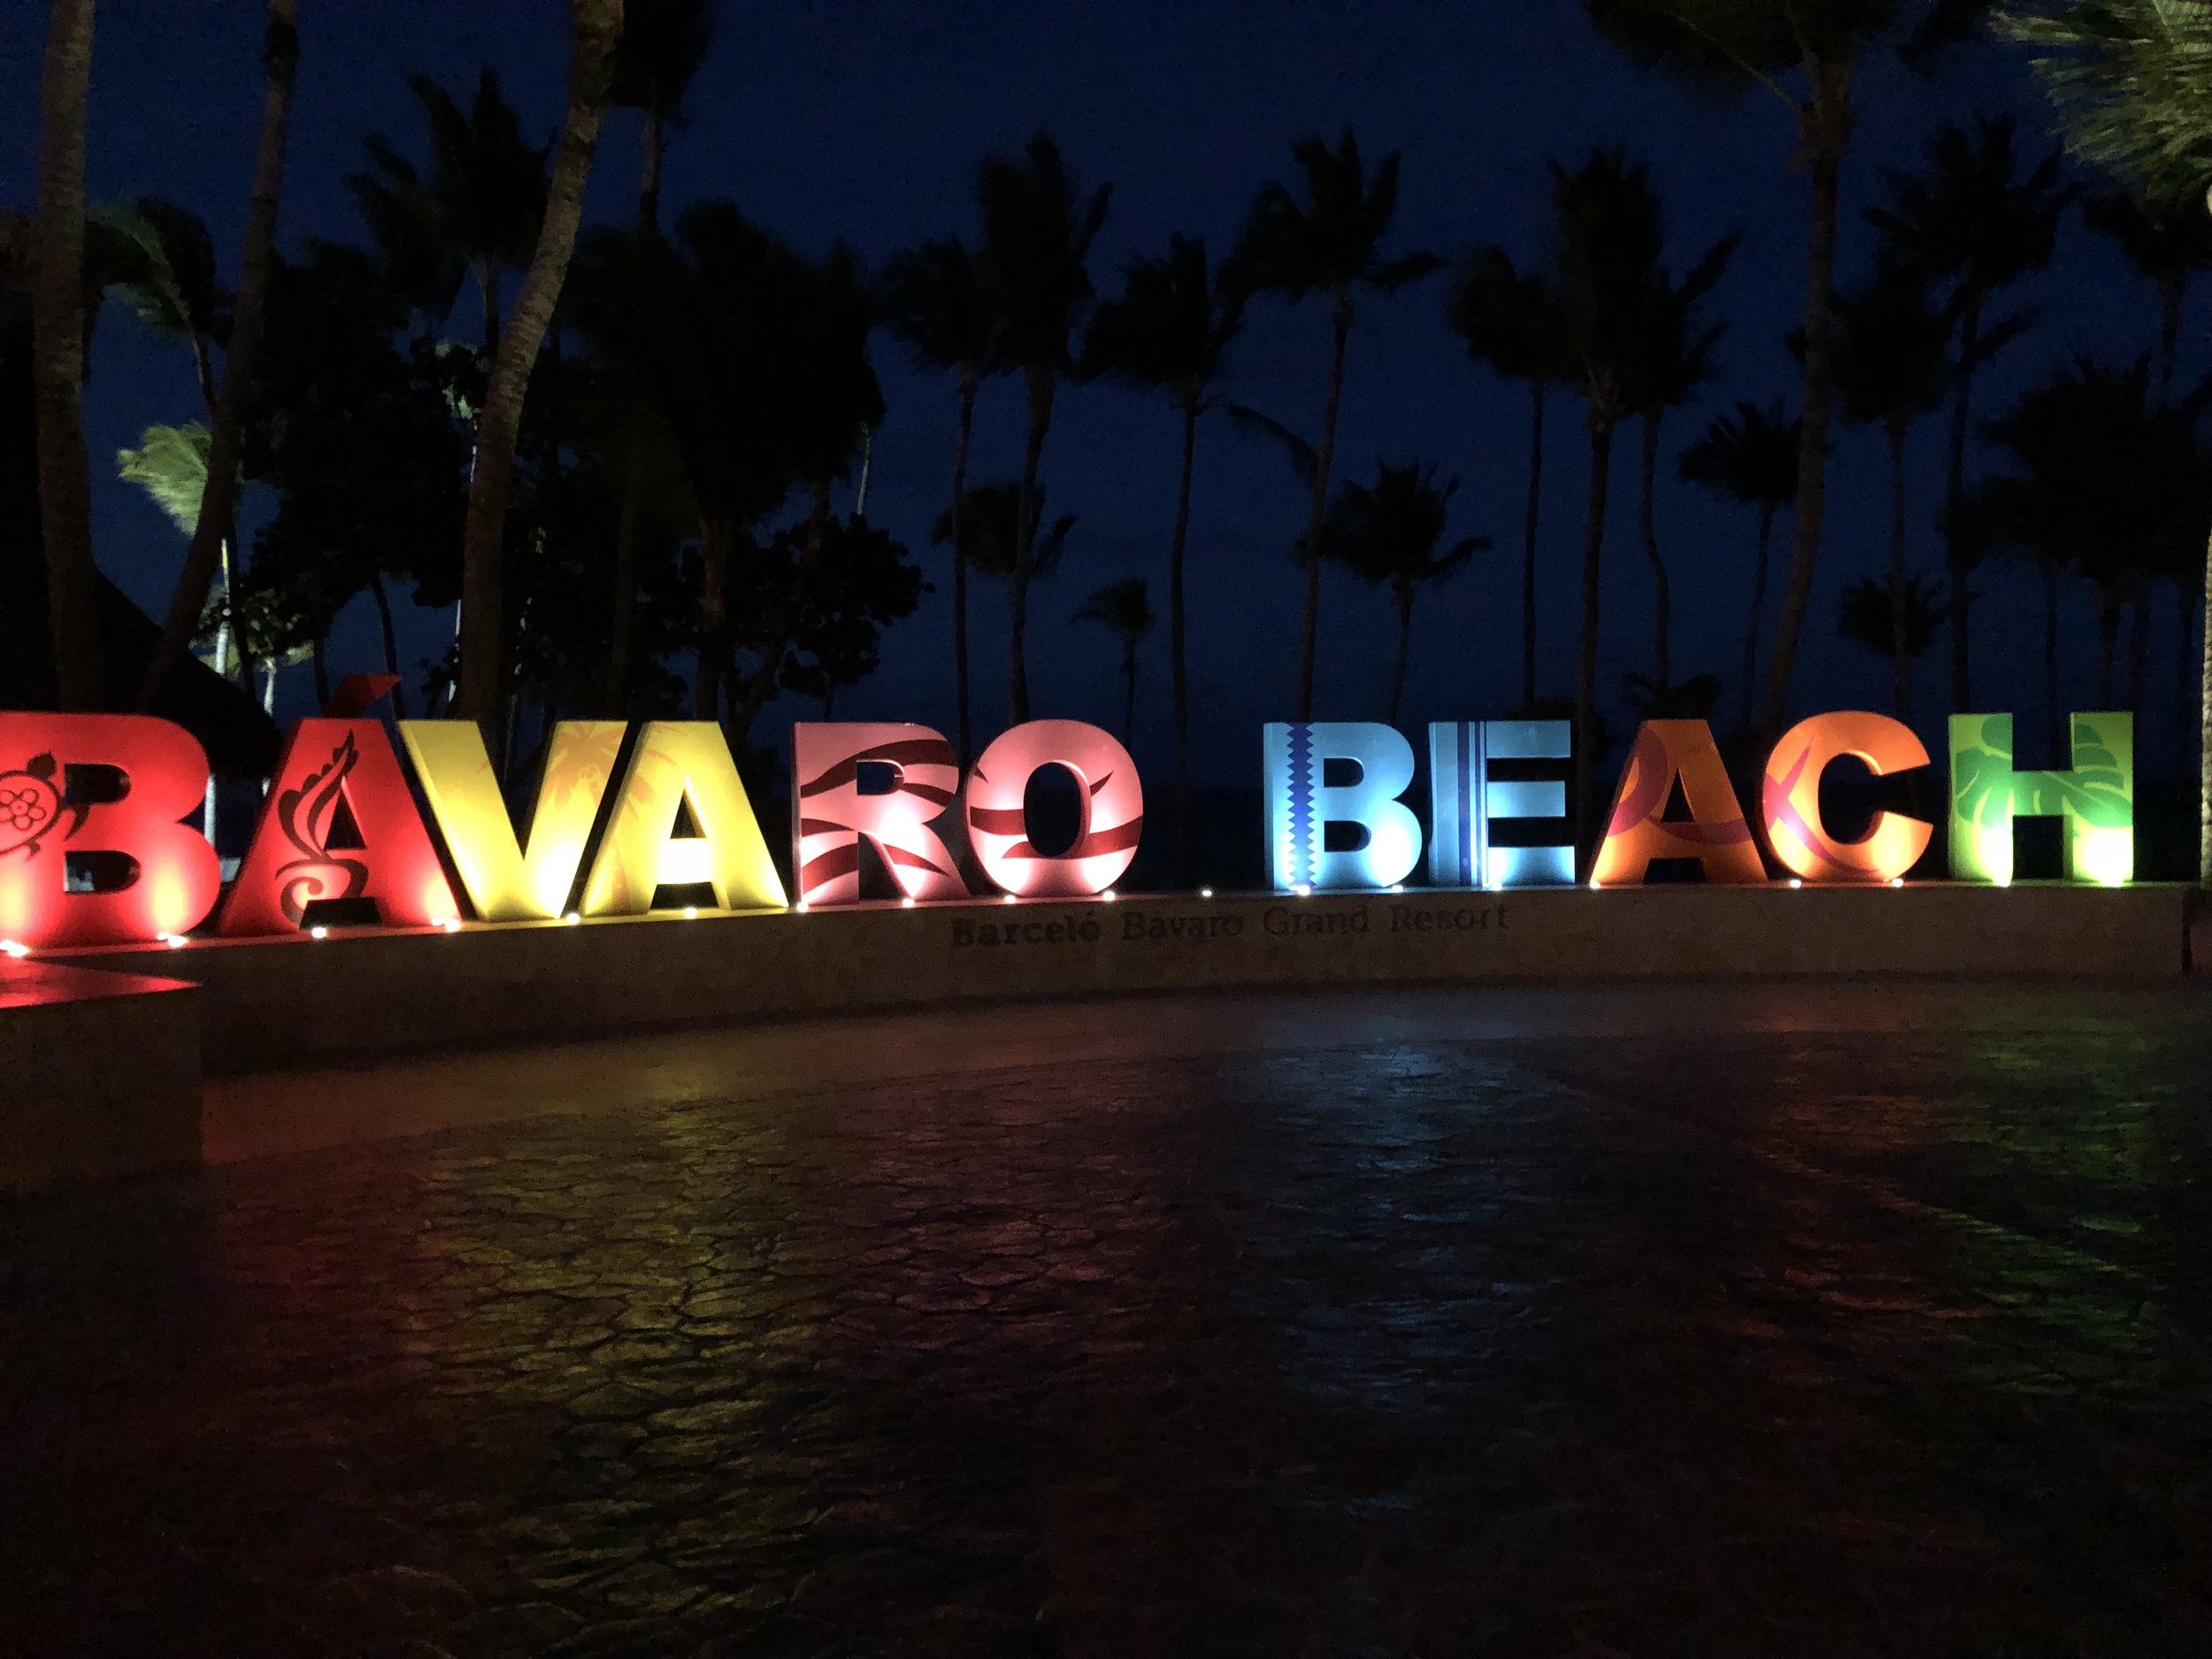 A Bavaro Beachsign at the beach front.